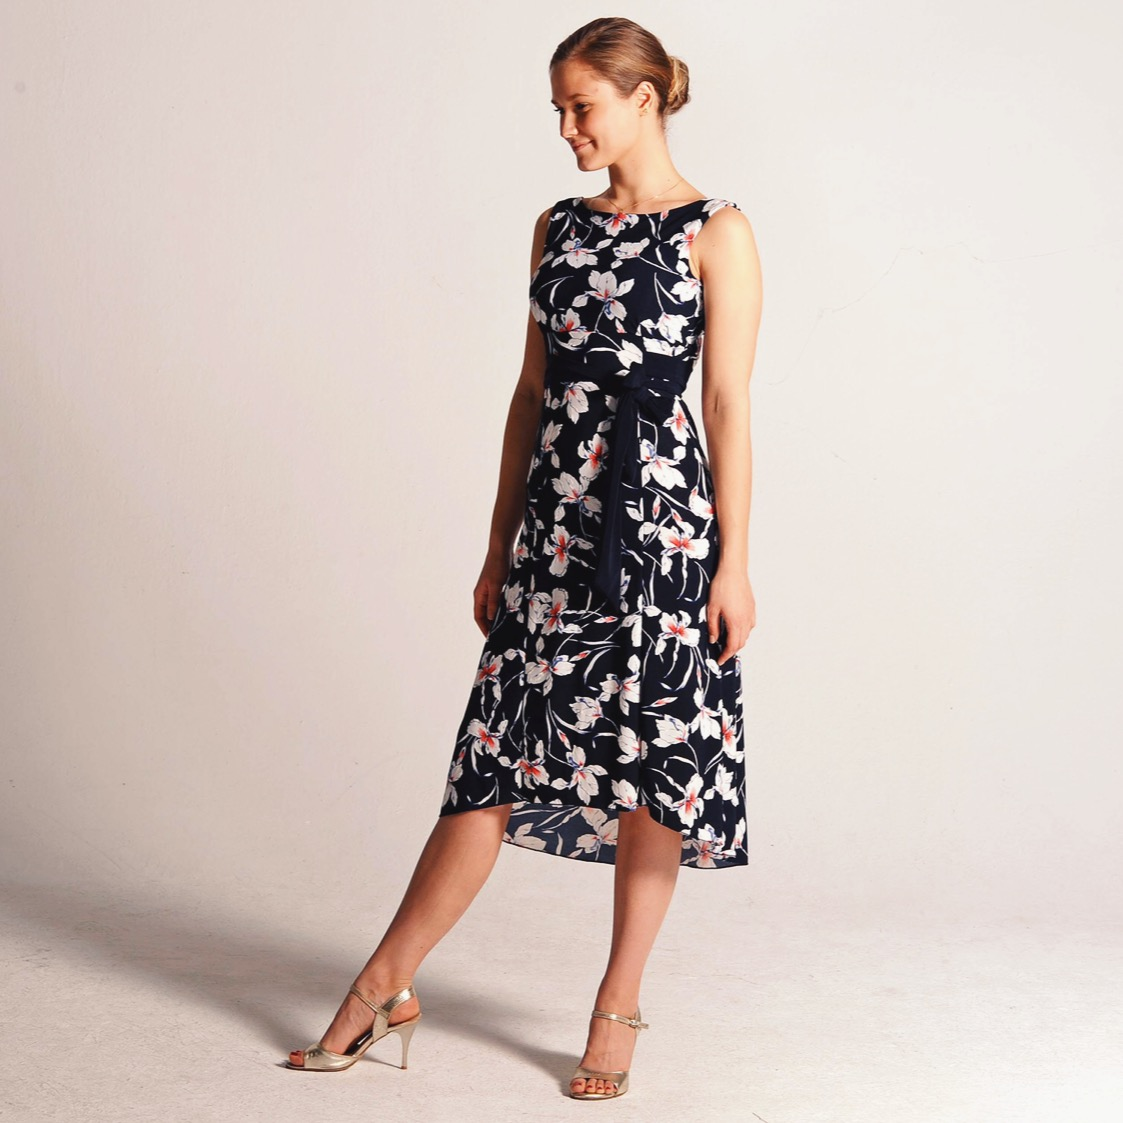 LUCIA_floral_tango_dress_coleccionberlin.JPG